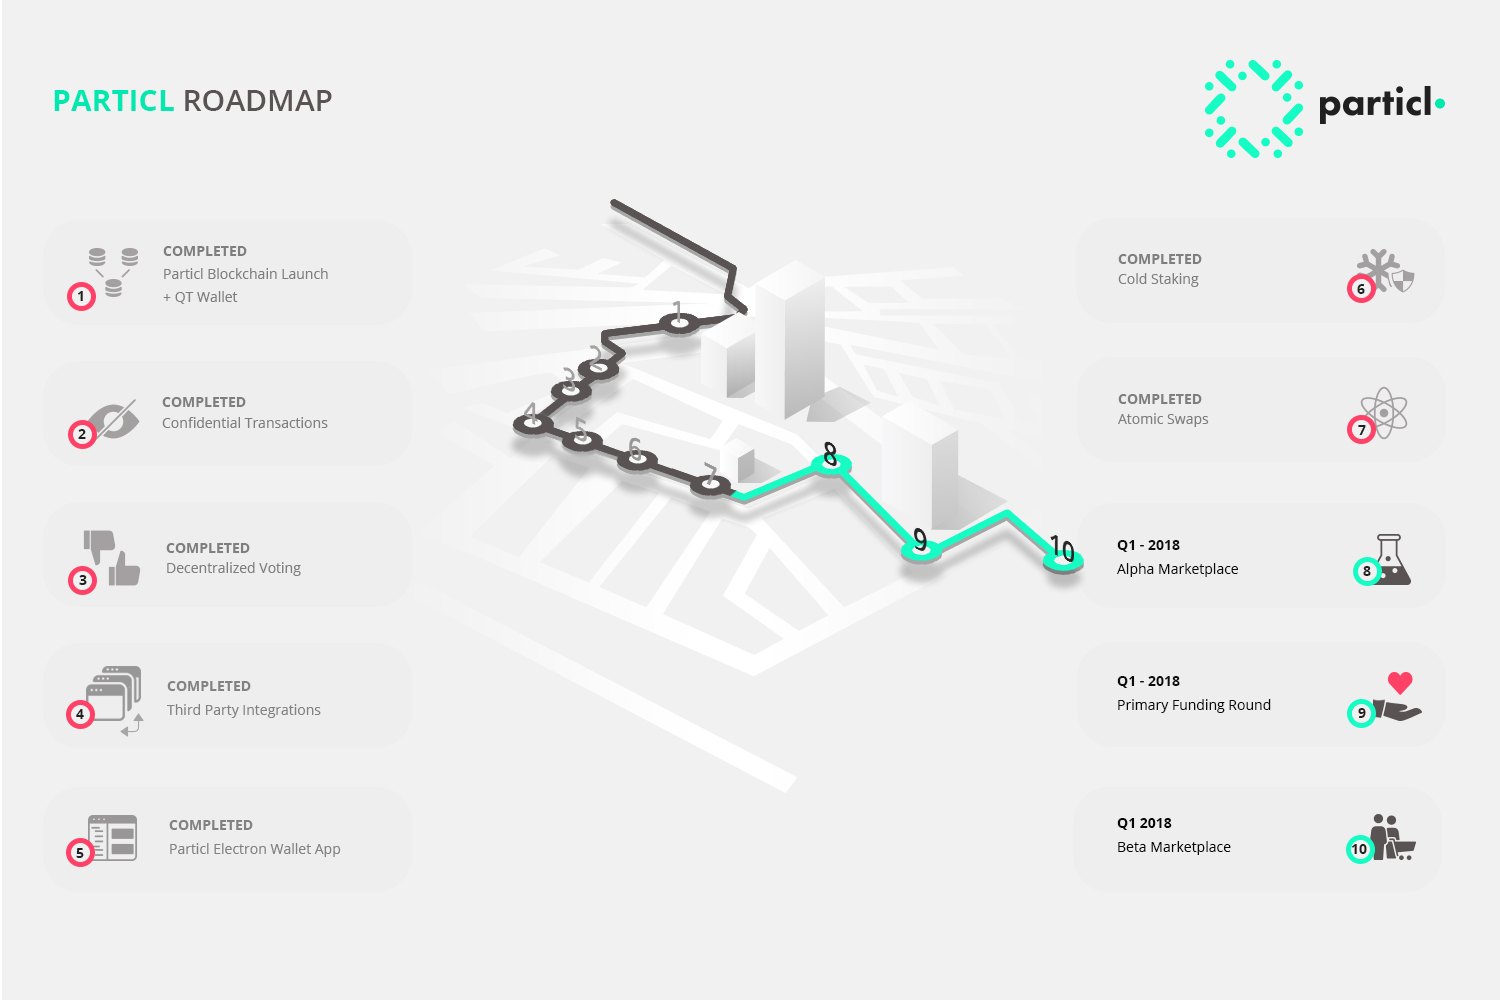 Roadmap Particl